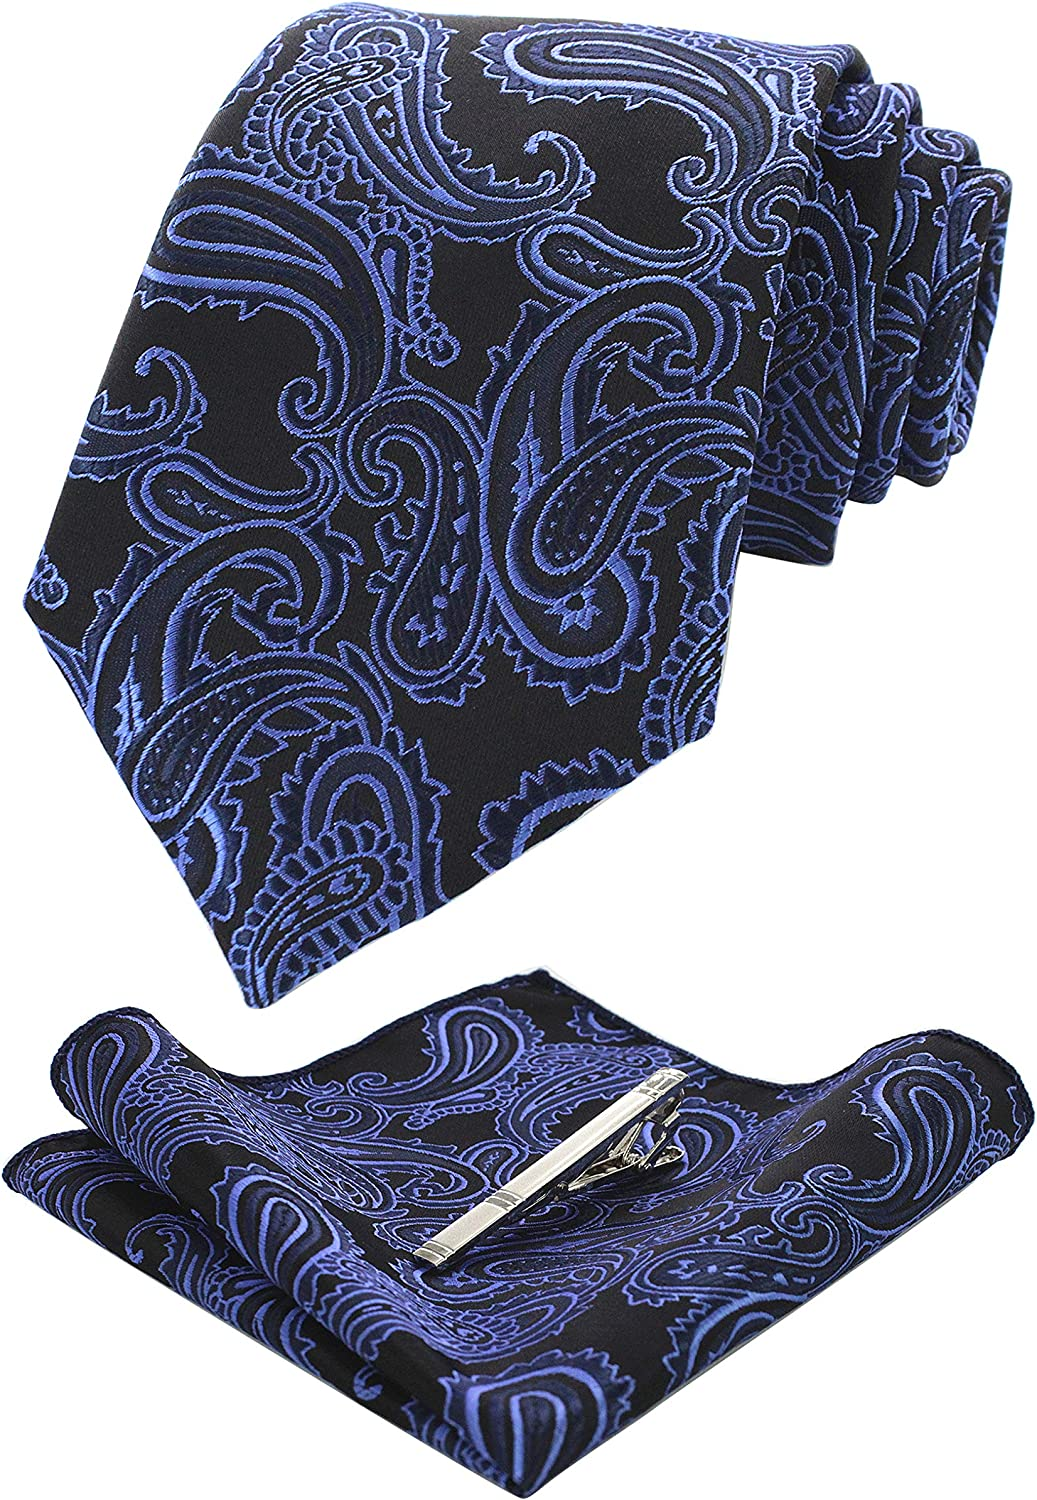 JEMYGINS Paisley Tie and Pocket Square, Necktie with Tie Clip Sets for Men